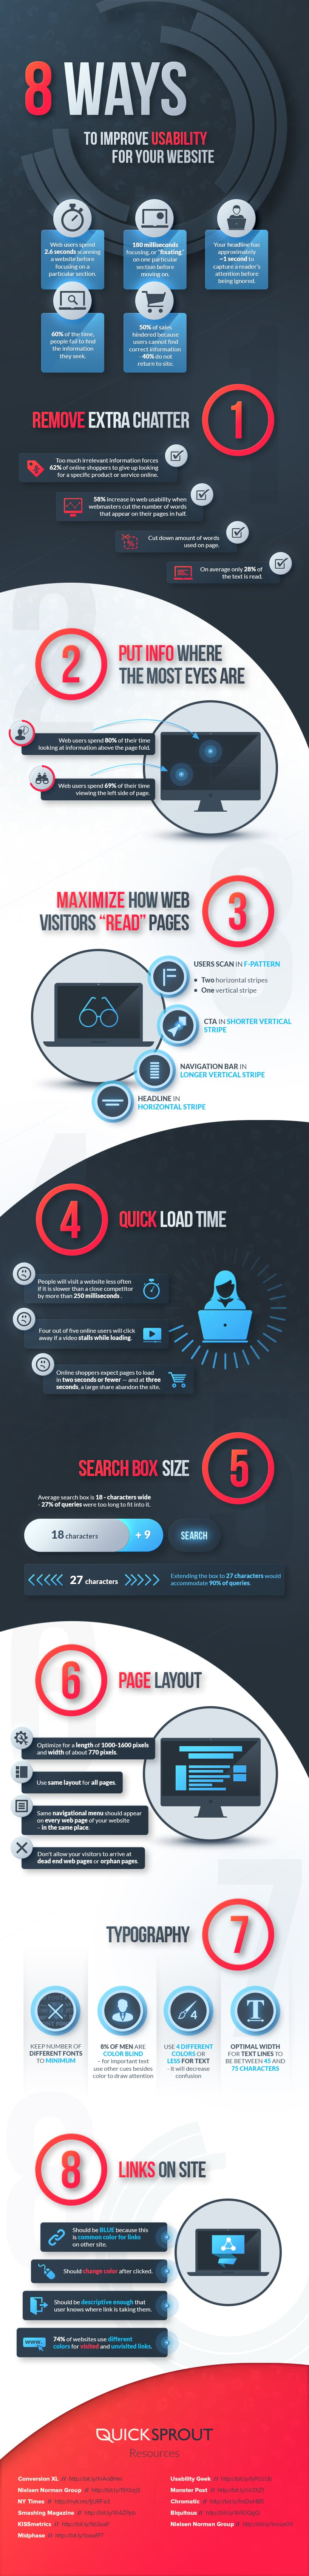 8 Ways to Improve the User Experience on Your Website [Infographic] | Social Media Today